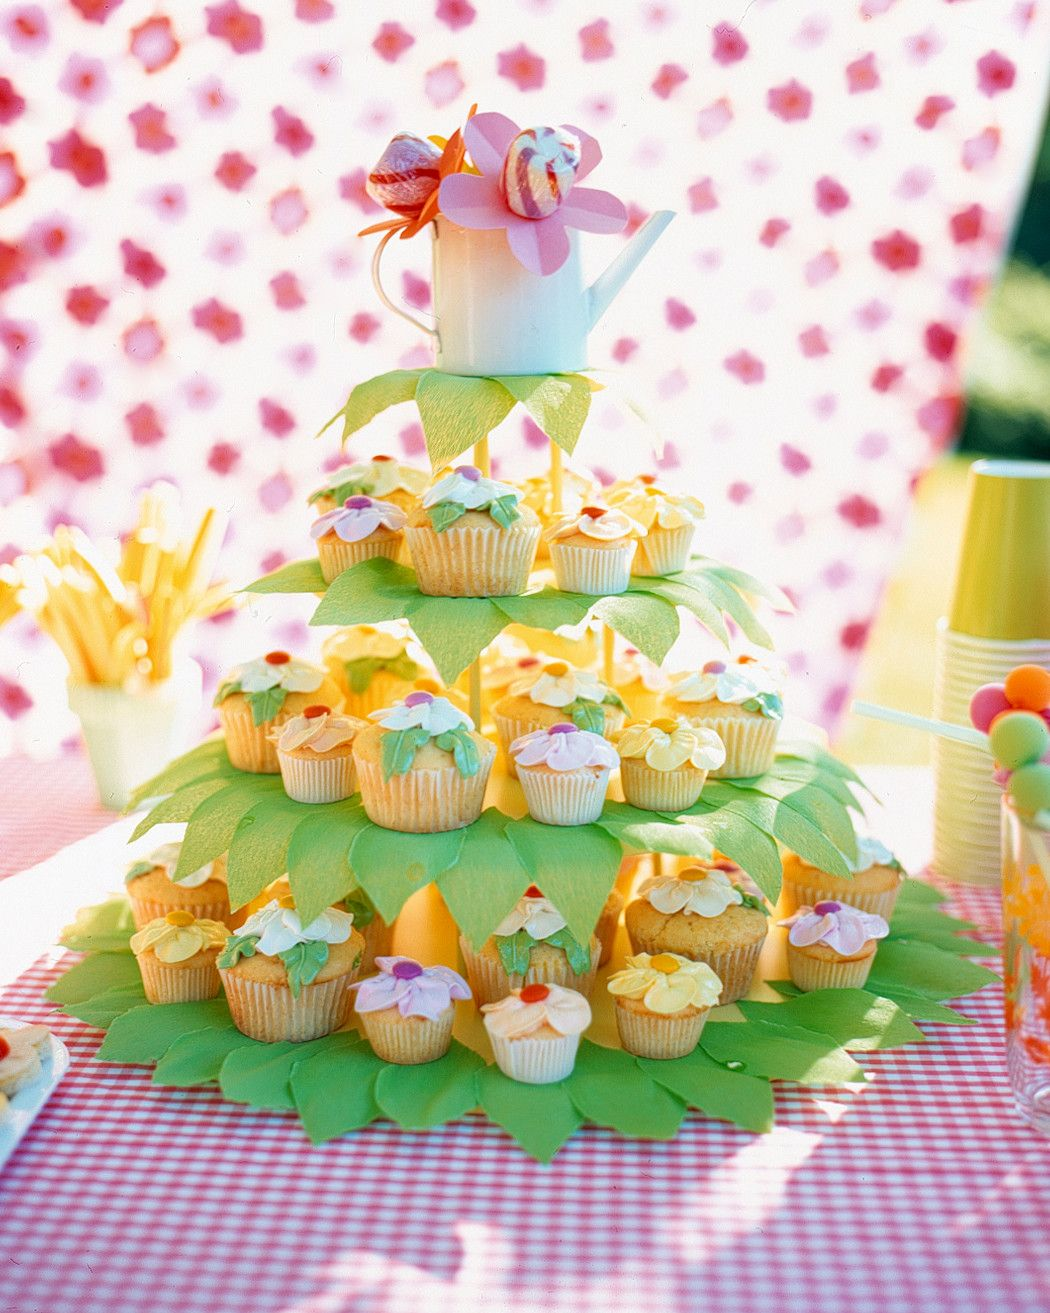 Mimic Your Spectacular Summer Garden With An Array Of Colorful Flower Cupcakes Arrange Them On A Cake Stand Decorated In Green Crepe Paper Leaves For